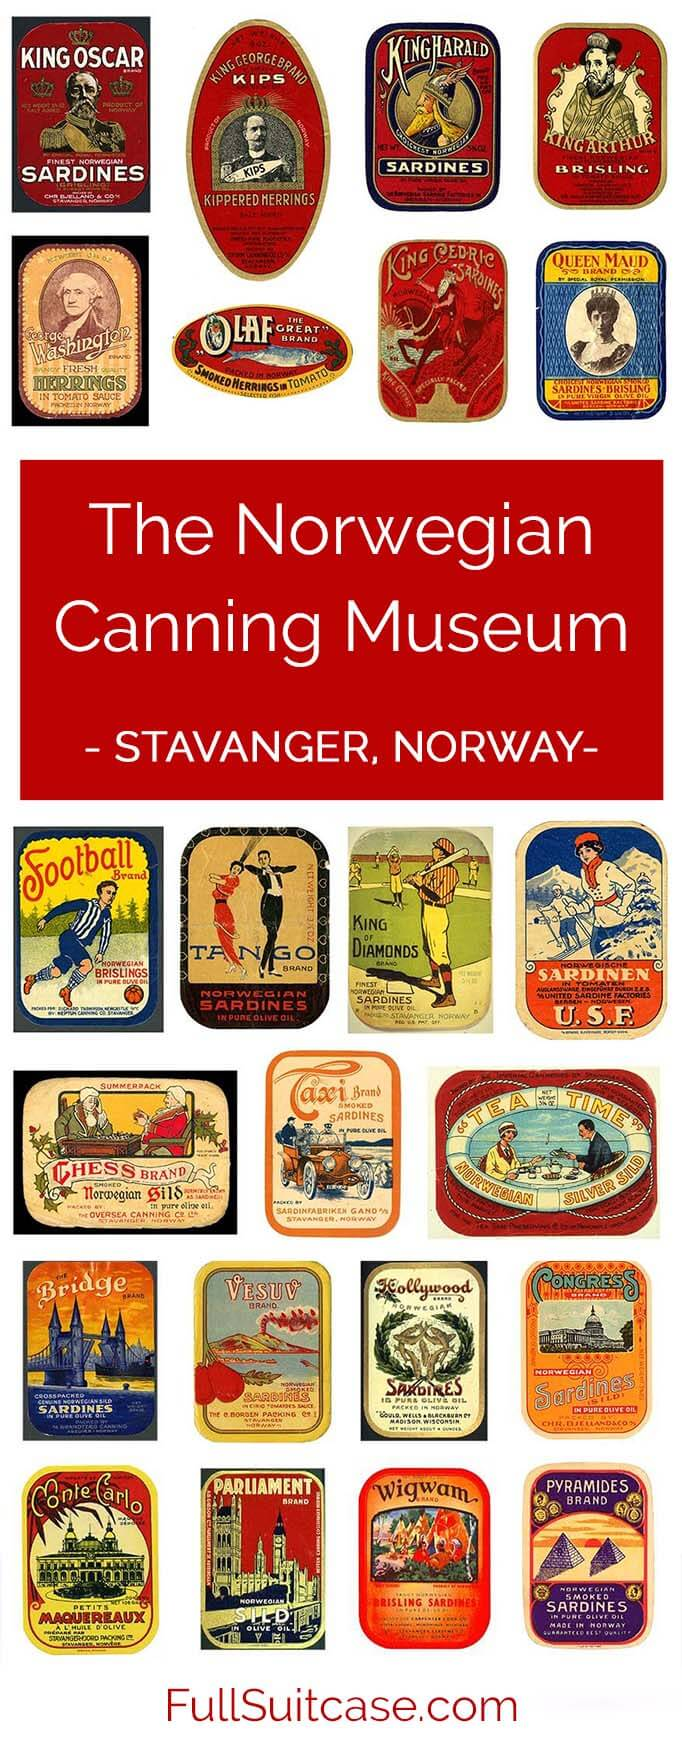 If you visit just one museum in #Stavanger #Norway, make it The Norwegian Canning Museum